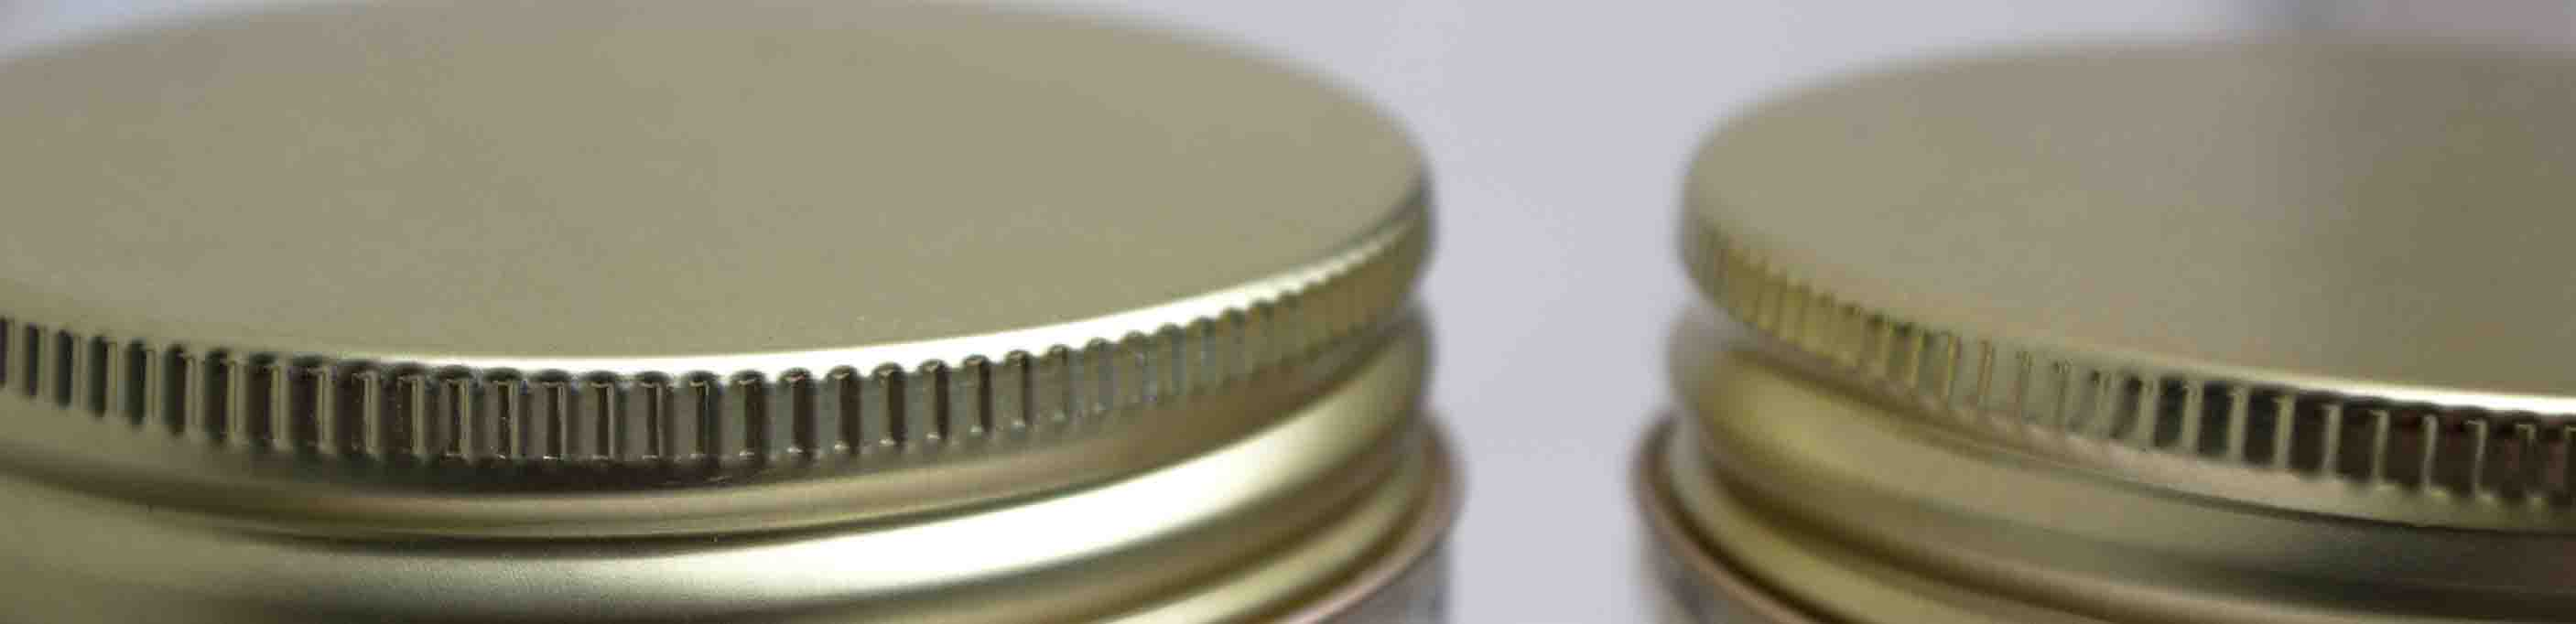 Metal Lids for Candle Jars